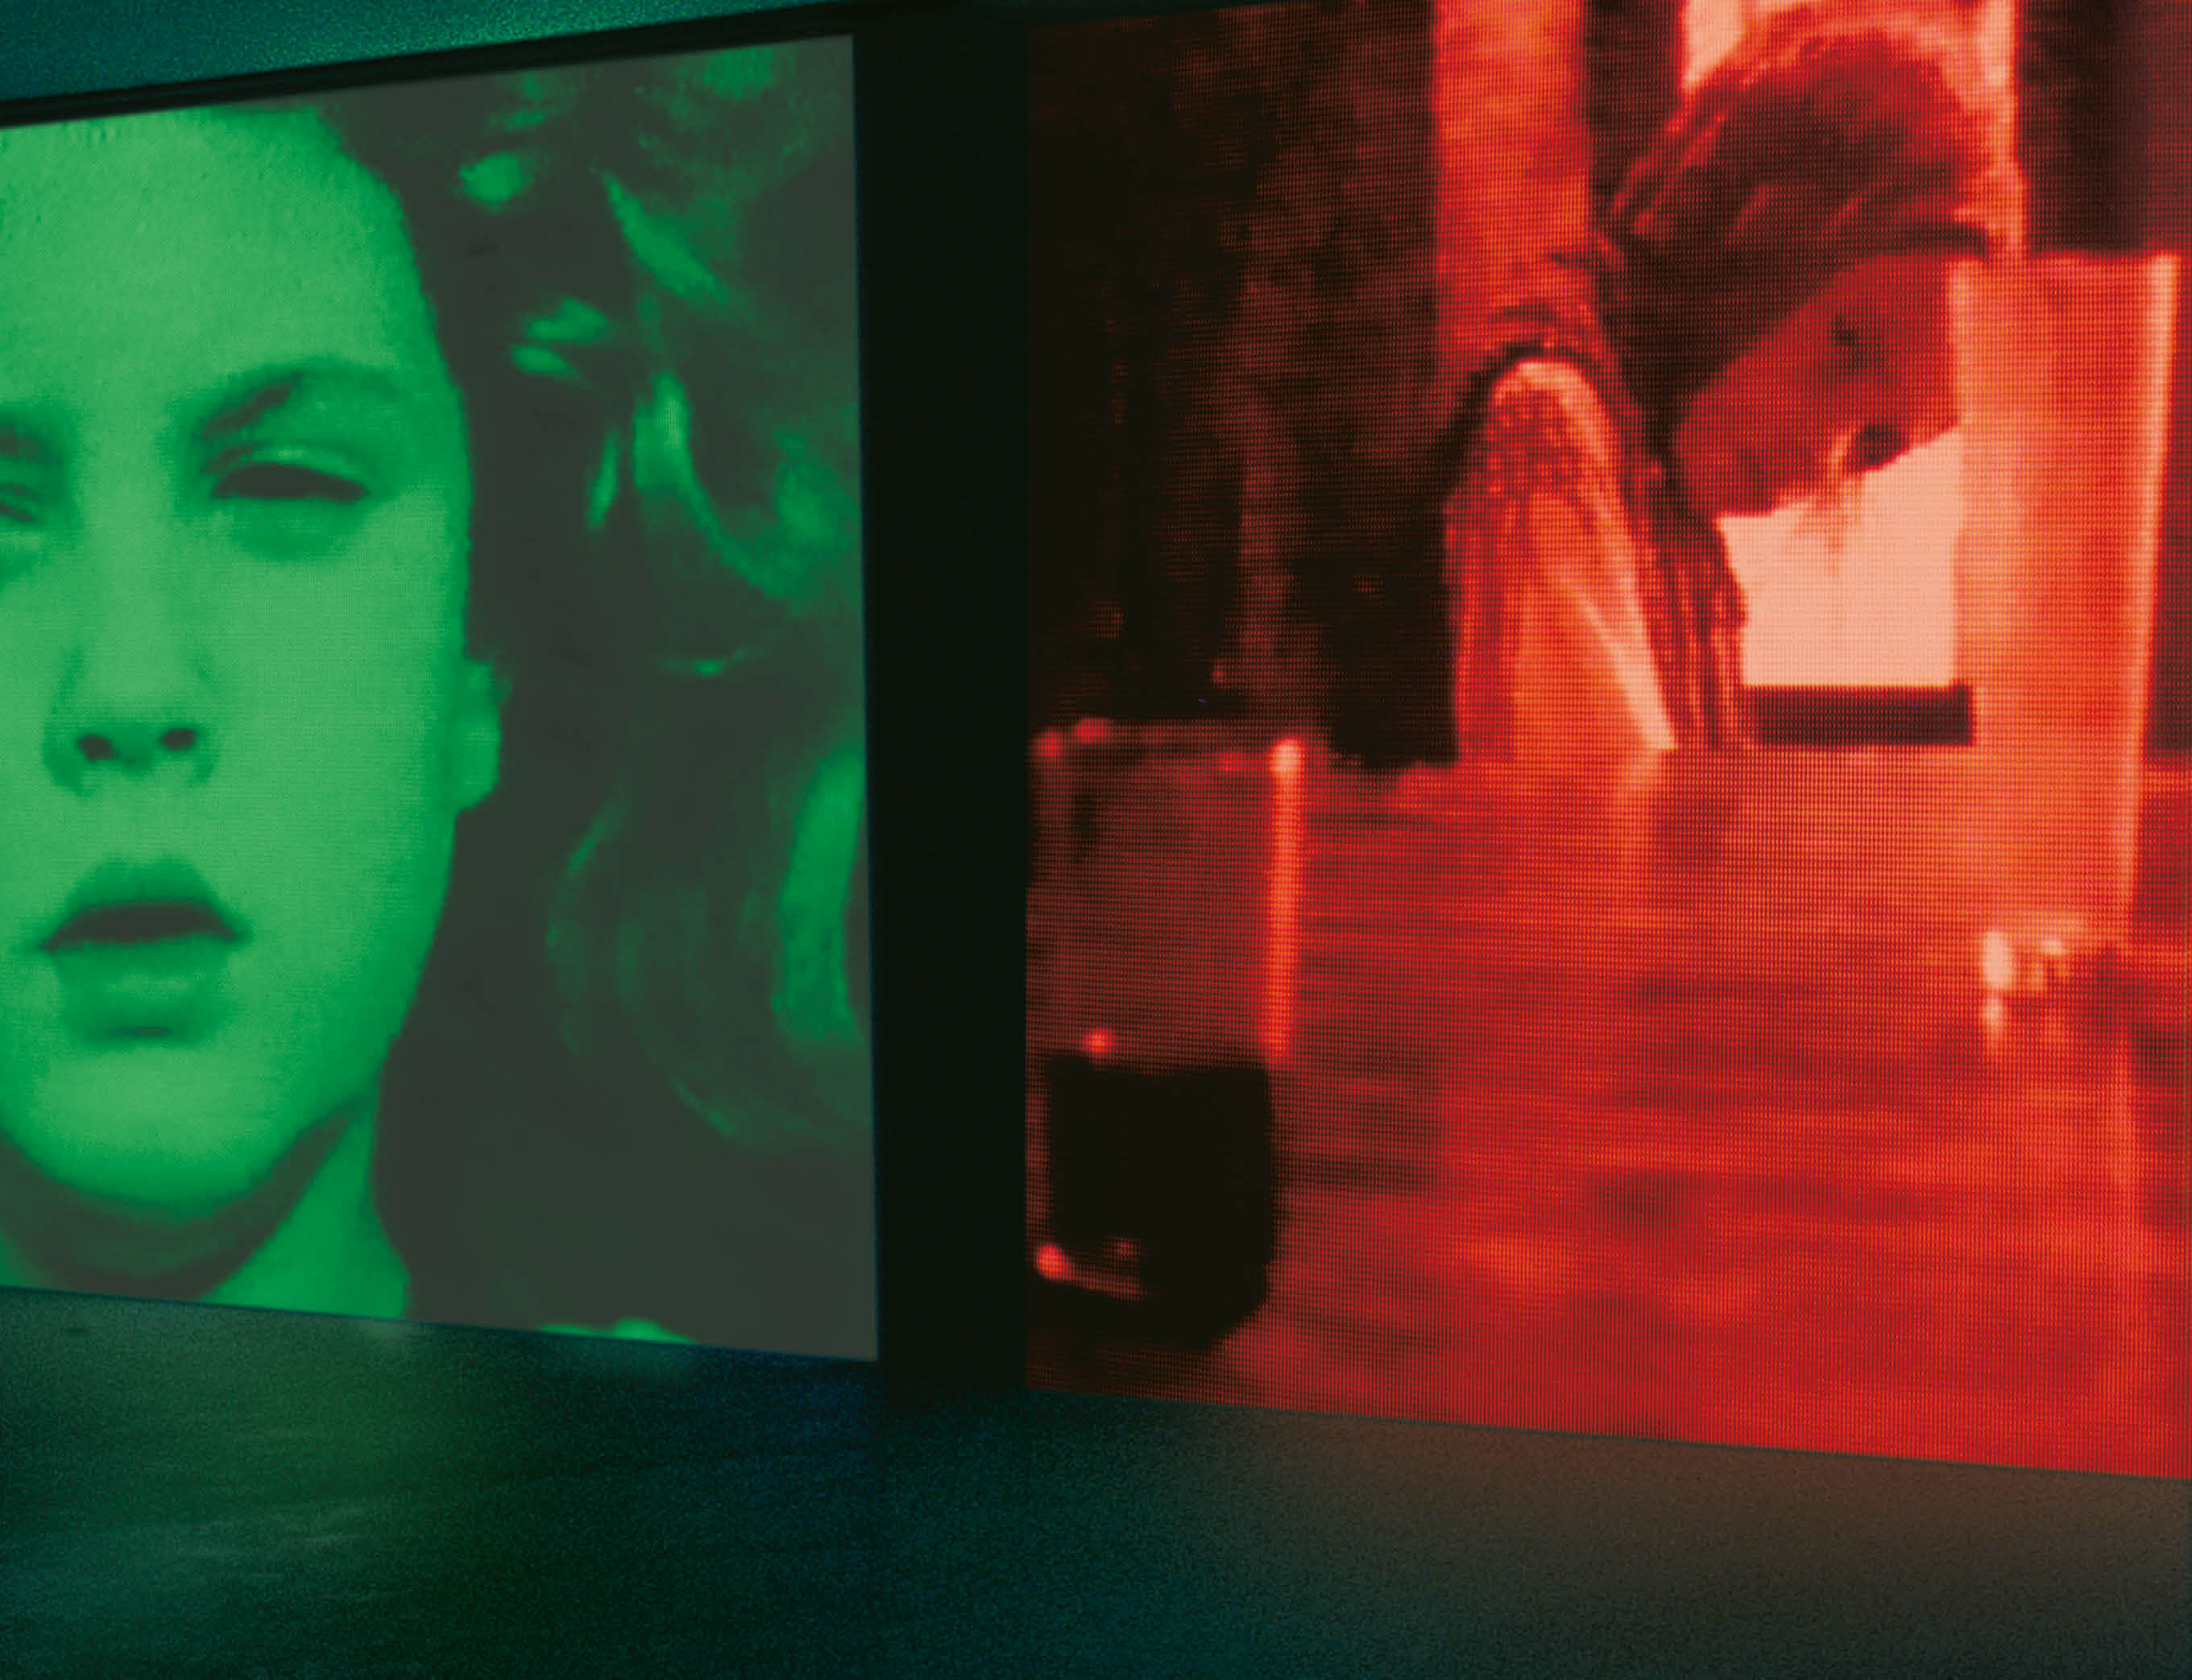 Book now: Susan Hiller in conversation with Andrea Lissoni